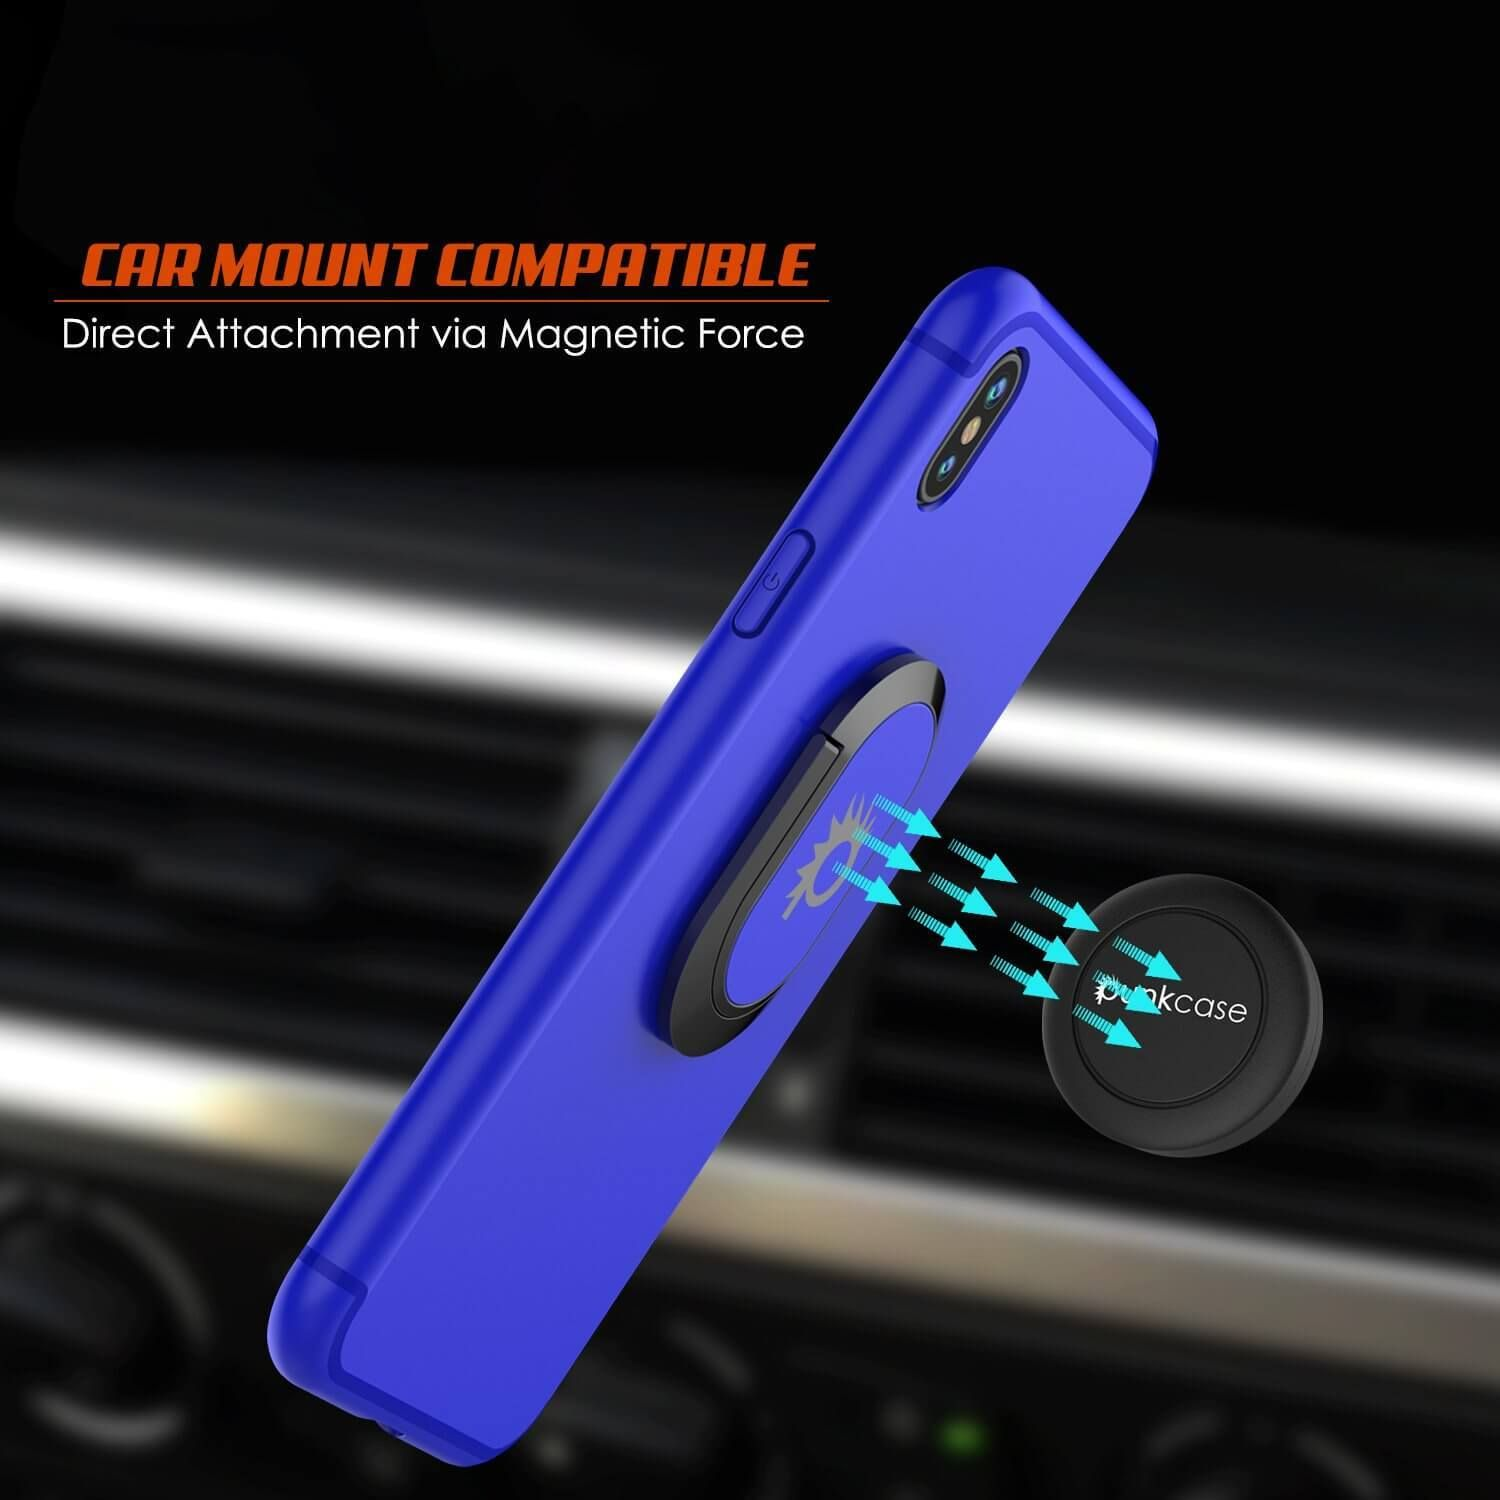 Ring Grip Holder /& Metal Plate for Magnetic Car Phone Mount Plus PunkShield Screen Protector for Samsung S8 Edge Blue Punkcase Magnetix Protective TPU Cover W//Kickstand Galaxy S8 Case